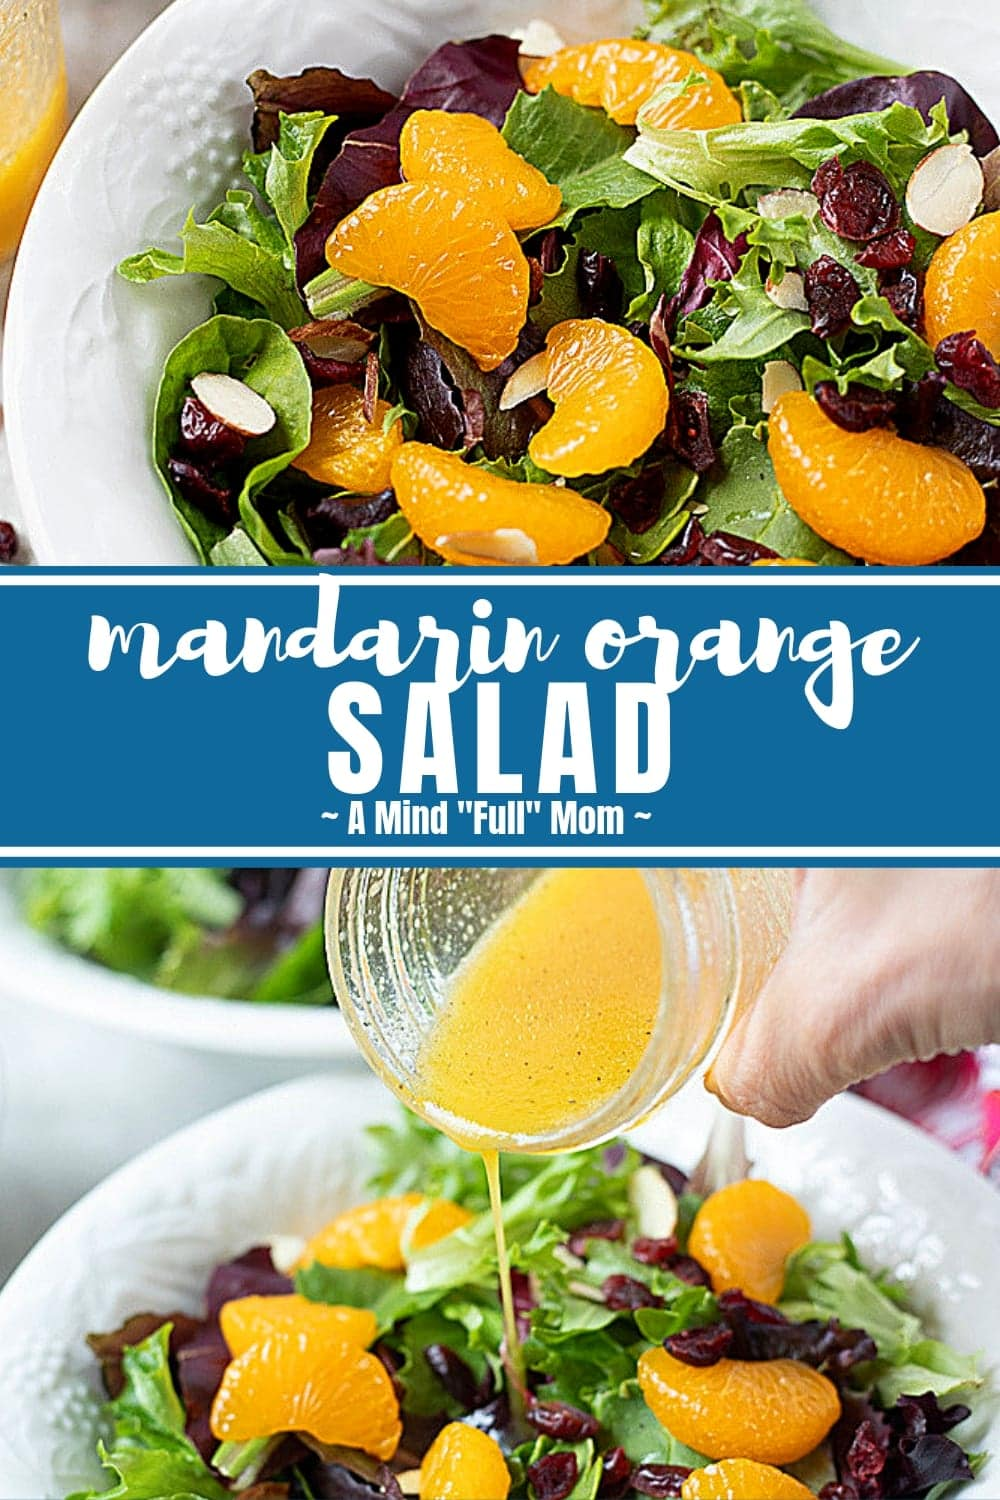 Mandarin Orange Salad is a bright and fresh side salad that is bursting with flavor! Made with tender spring mix, sweet mandarin oranges, almonds, cranberries, and a fresh Citrus Salad Dressing, this Mandarin Orange Salad is DELICIOUS!